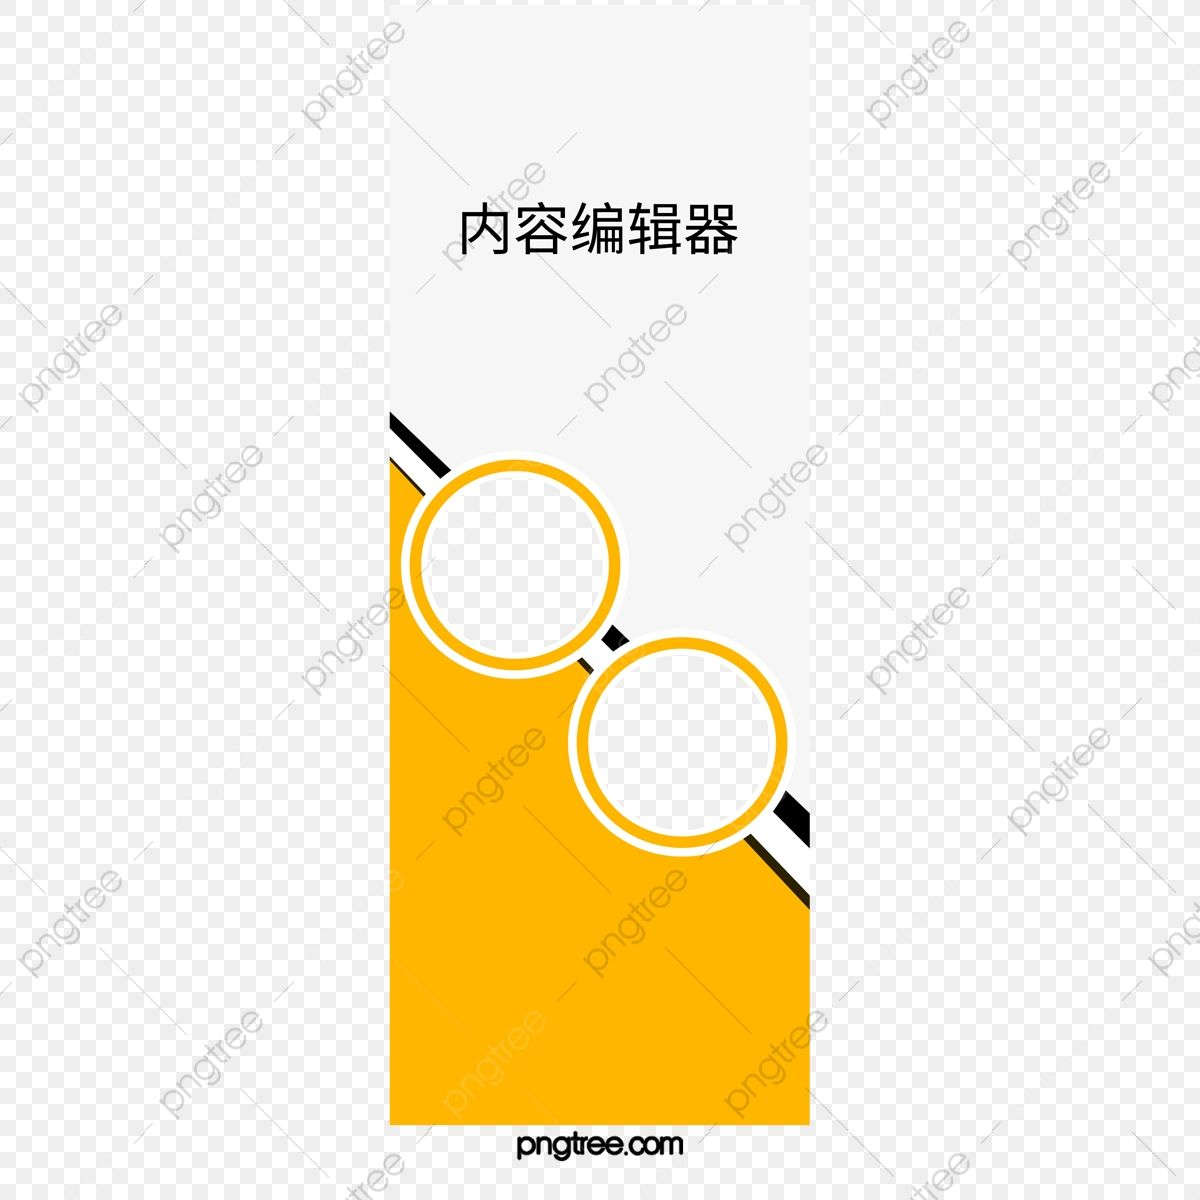 Chin Yellow Template Material Chin Chin Template Png Transparent Clipart Image And Psd File For Free Download Templates Flyer Design Layout Poster Template